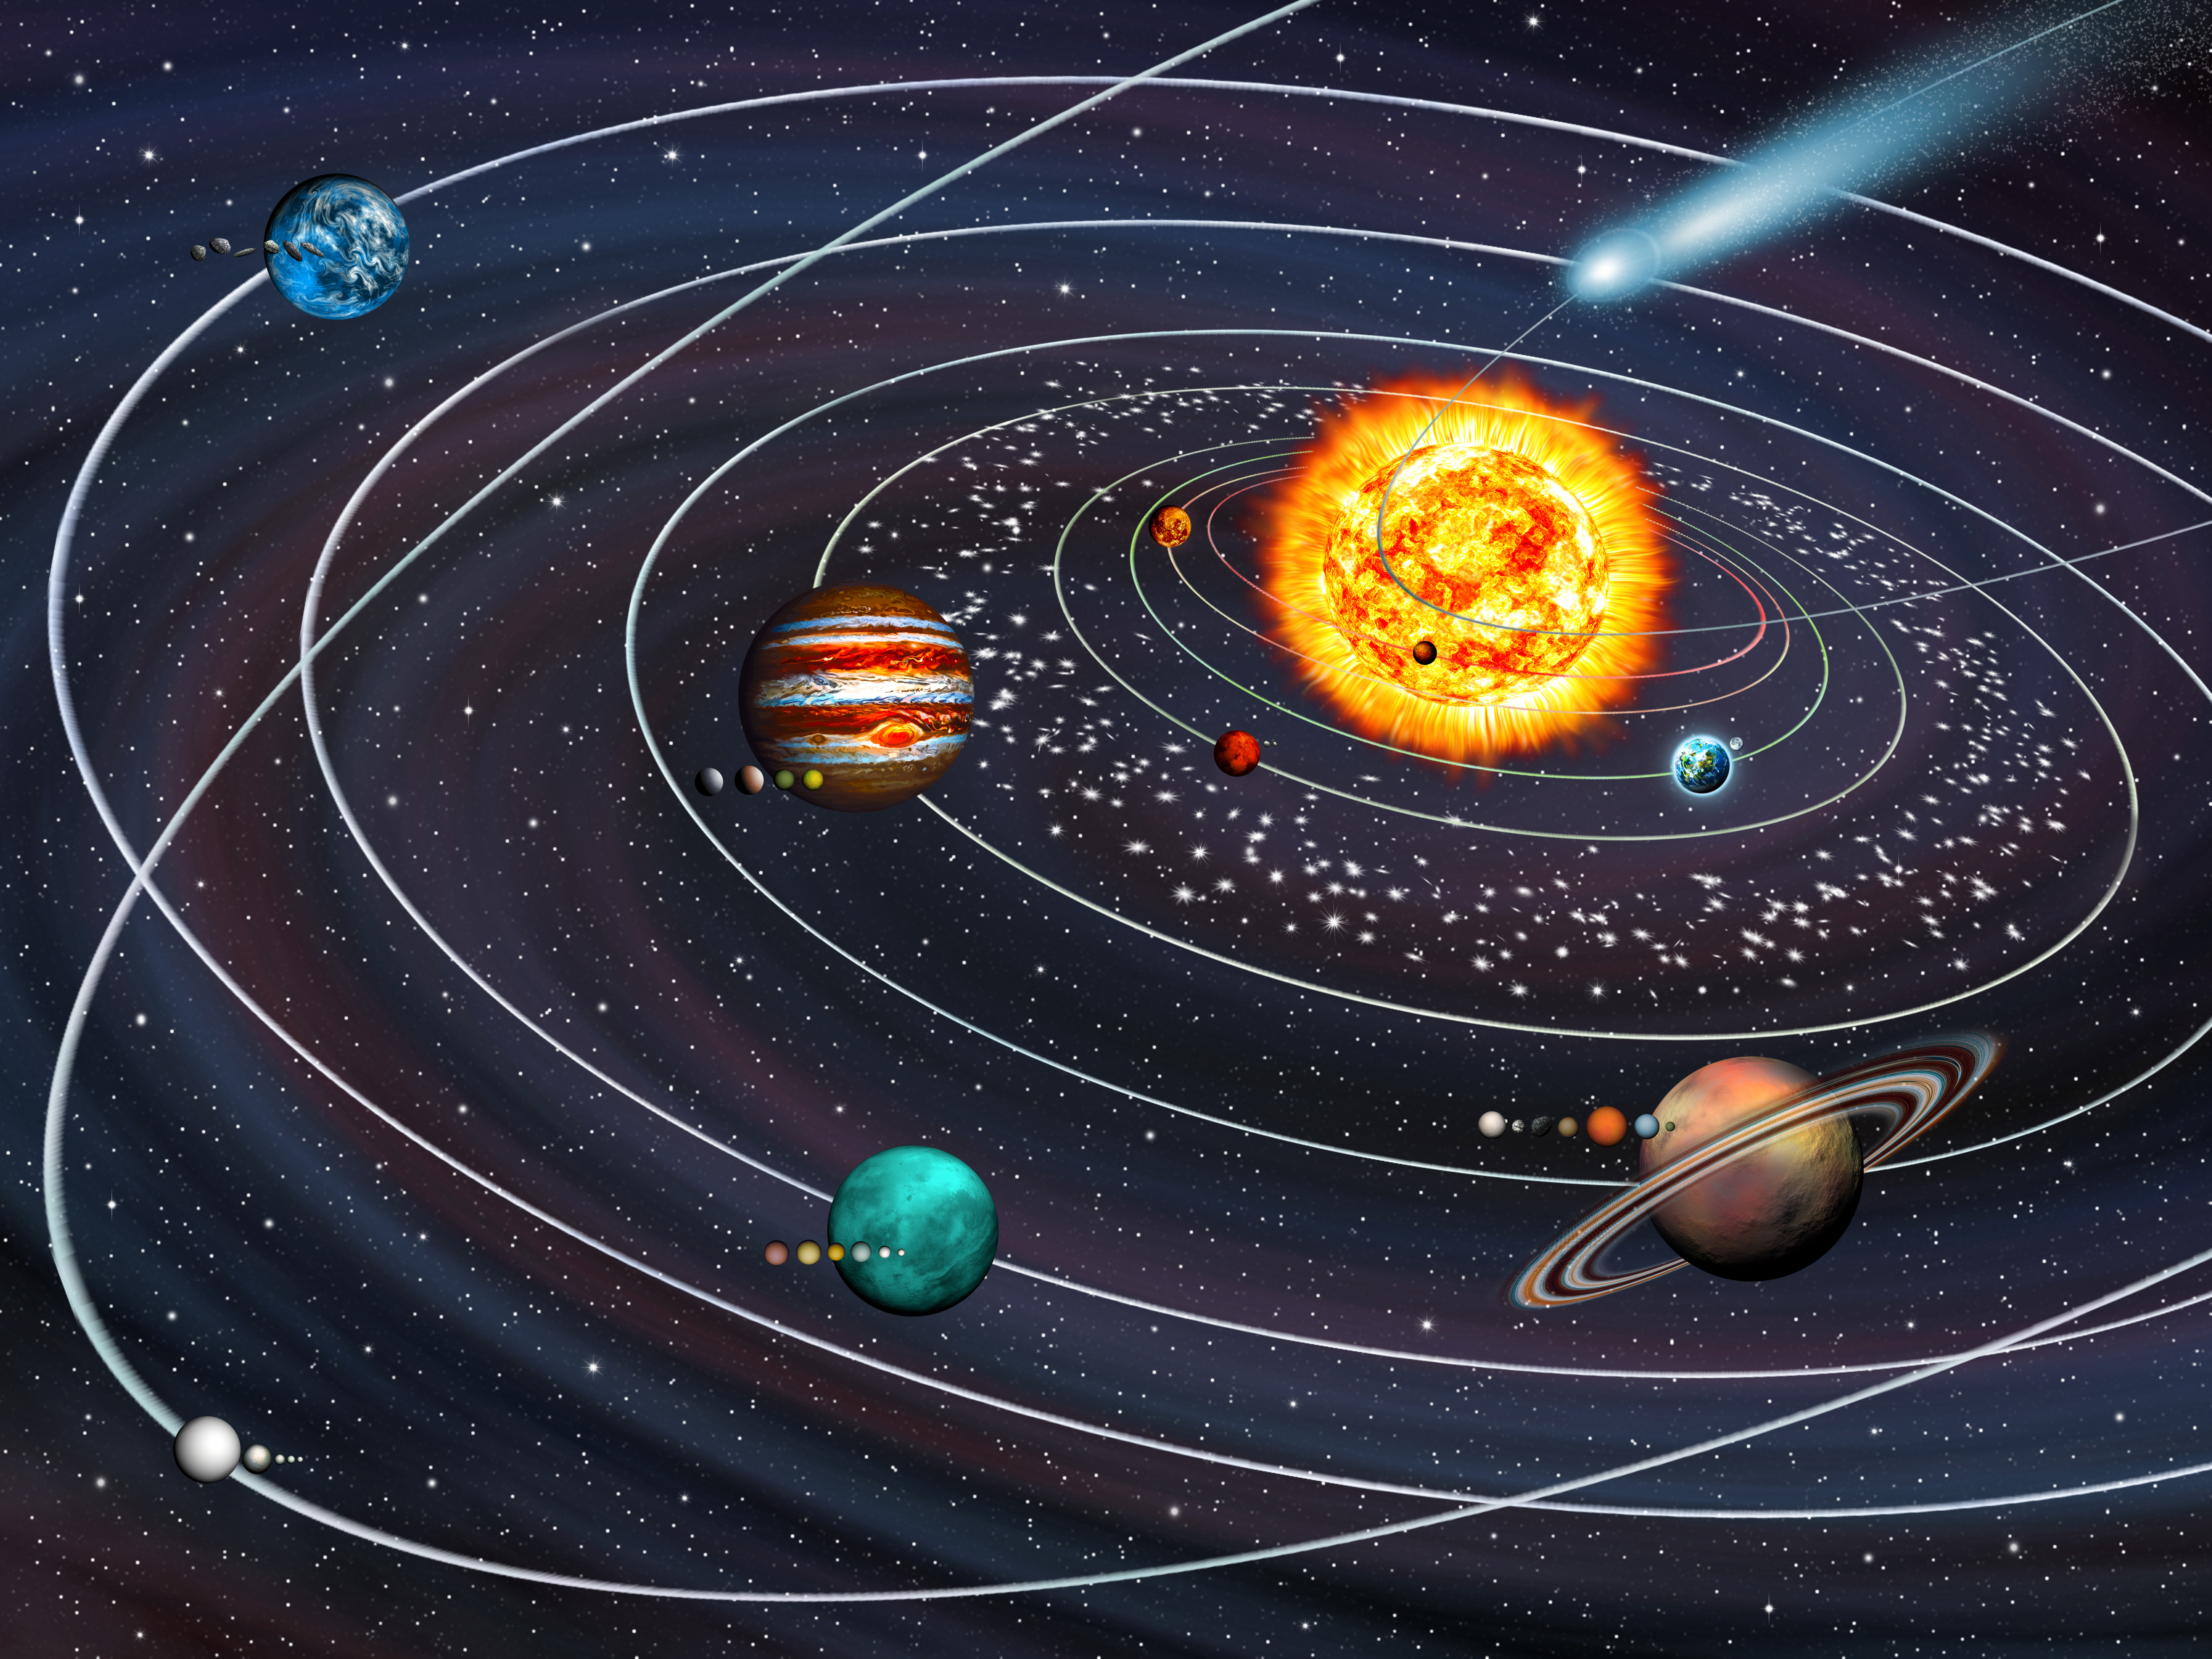 Our solar system with illustrated asteroid belt between Mars and Jupiter. Image courtesy of Adobe Stock.